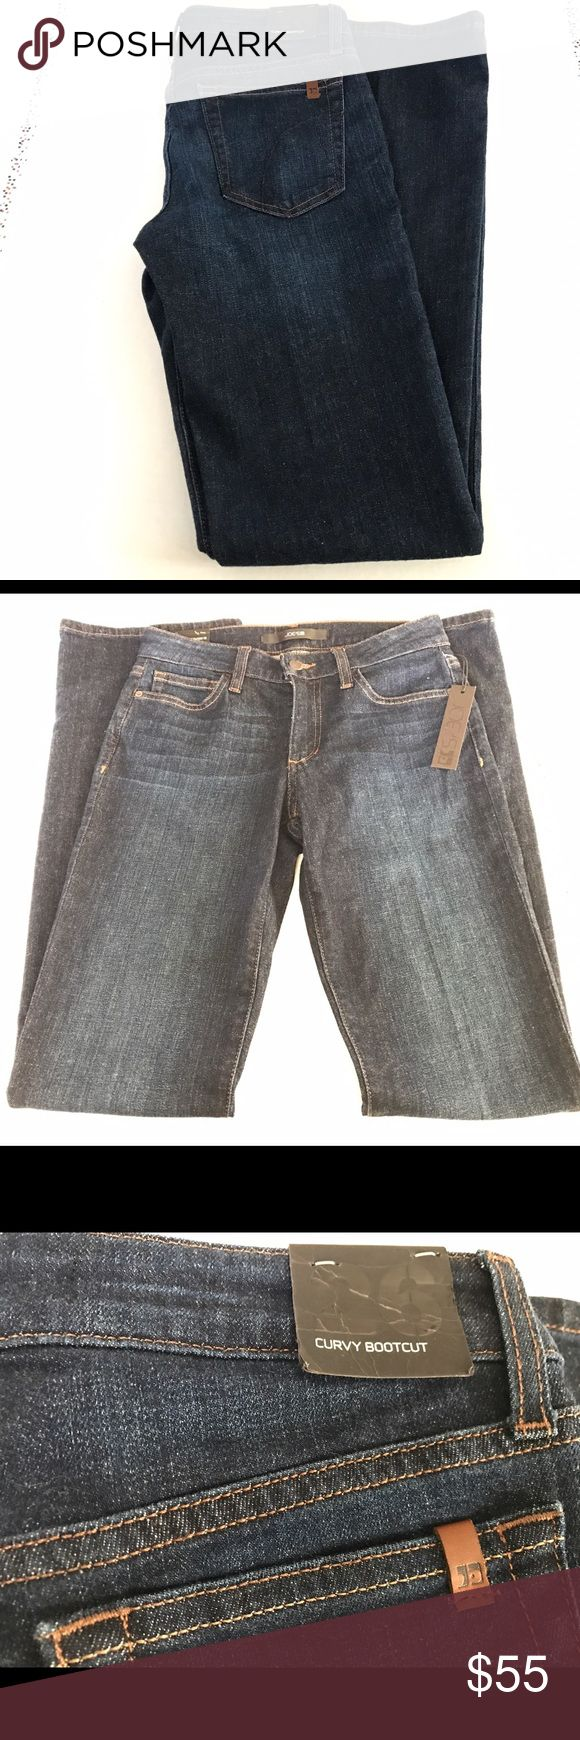 Joe Jeans Woman's Bootcut Jeans size 27 NWT Joe Jeans Woman's bootcut flared jeans new with tags. Dark wash.  Size 26  ❌trades❌ please don't ask. All reasonable offers will be considered. Joe's Jeans Jeans Boot Cut